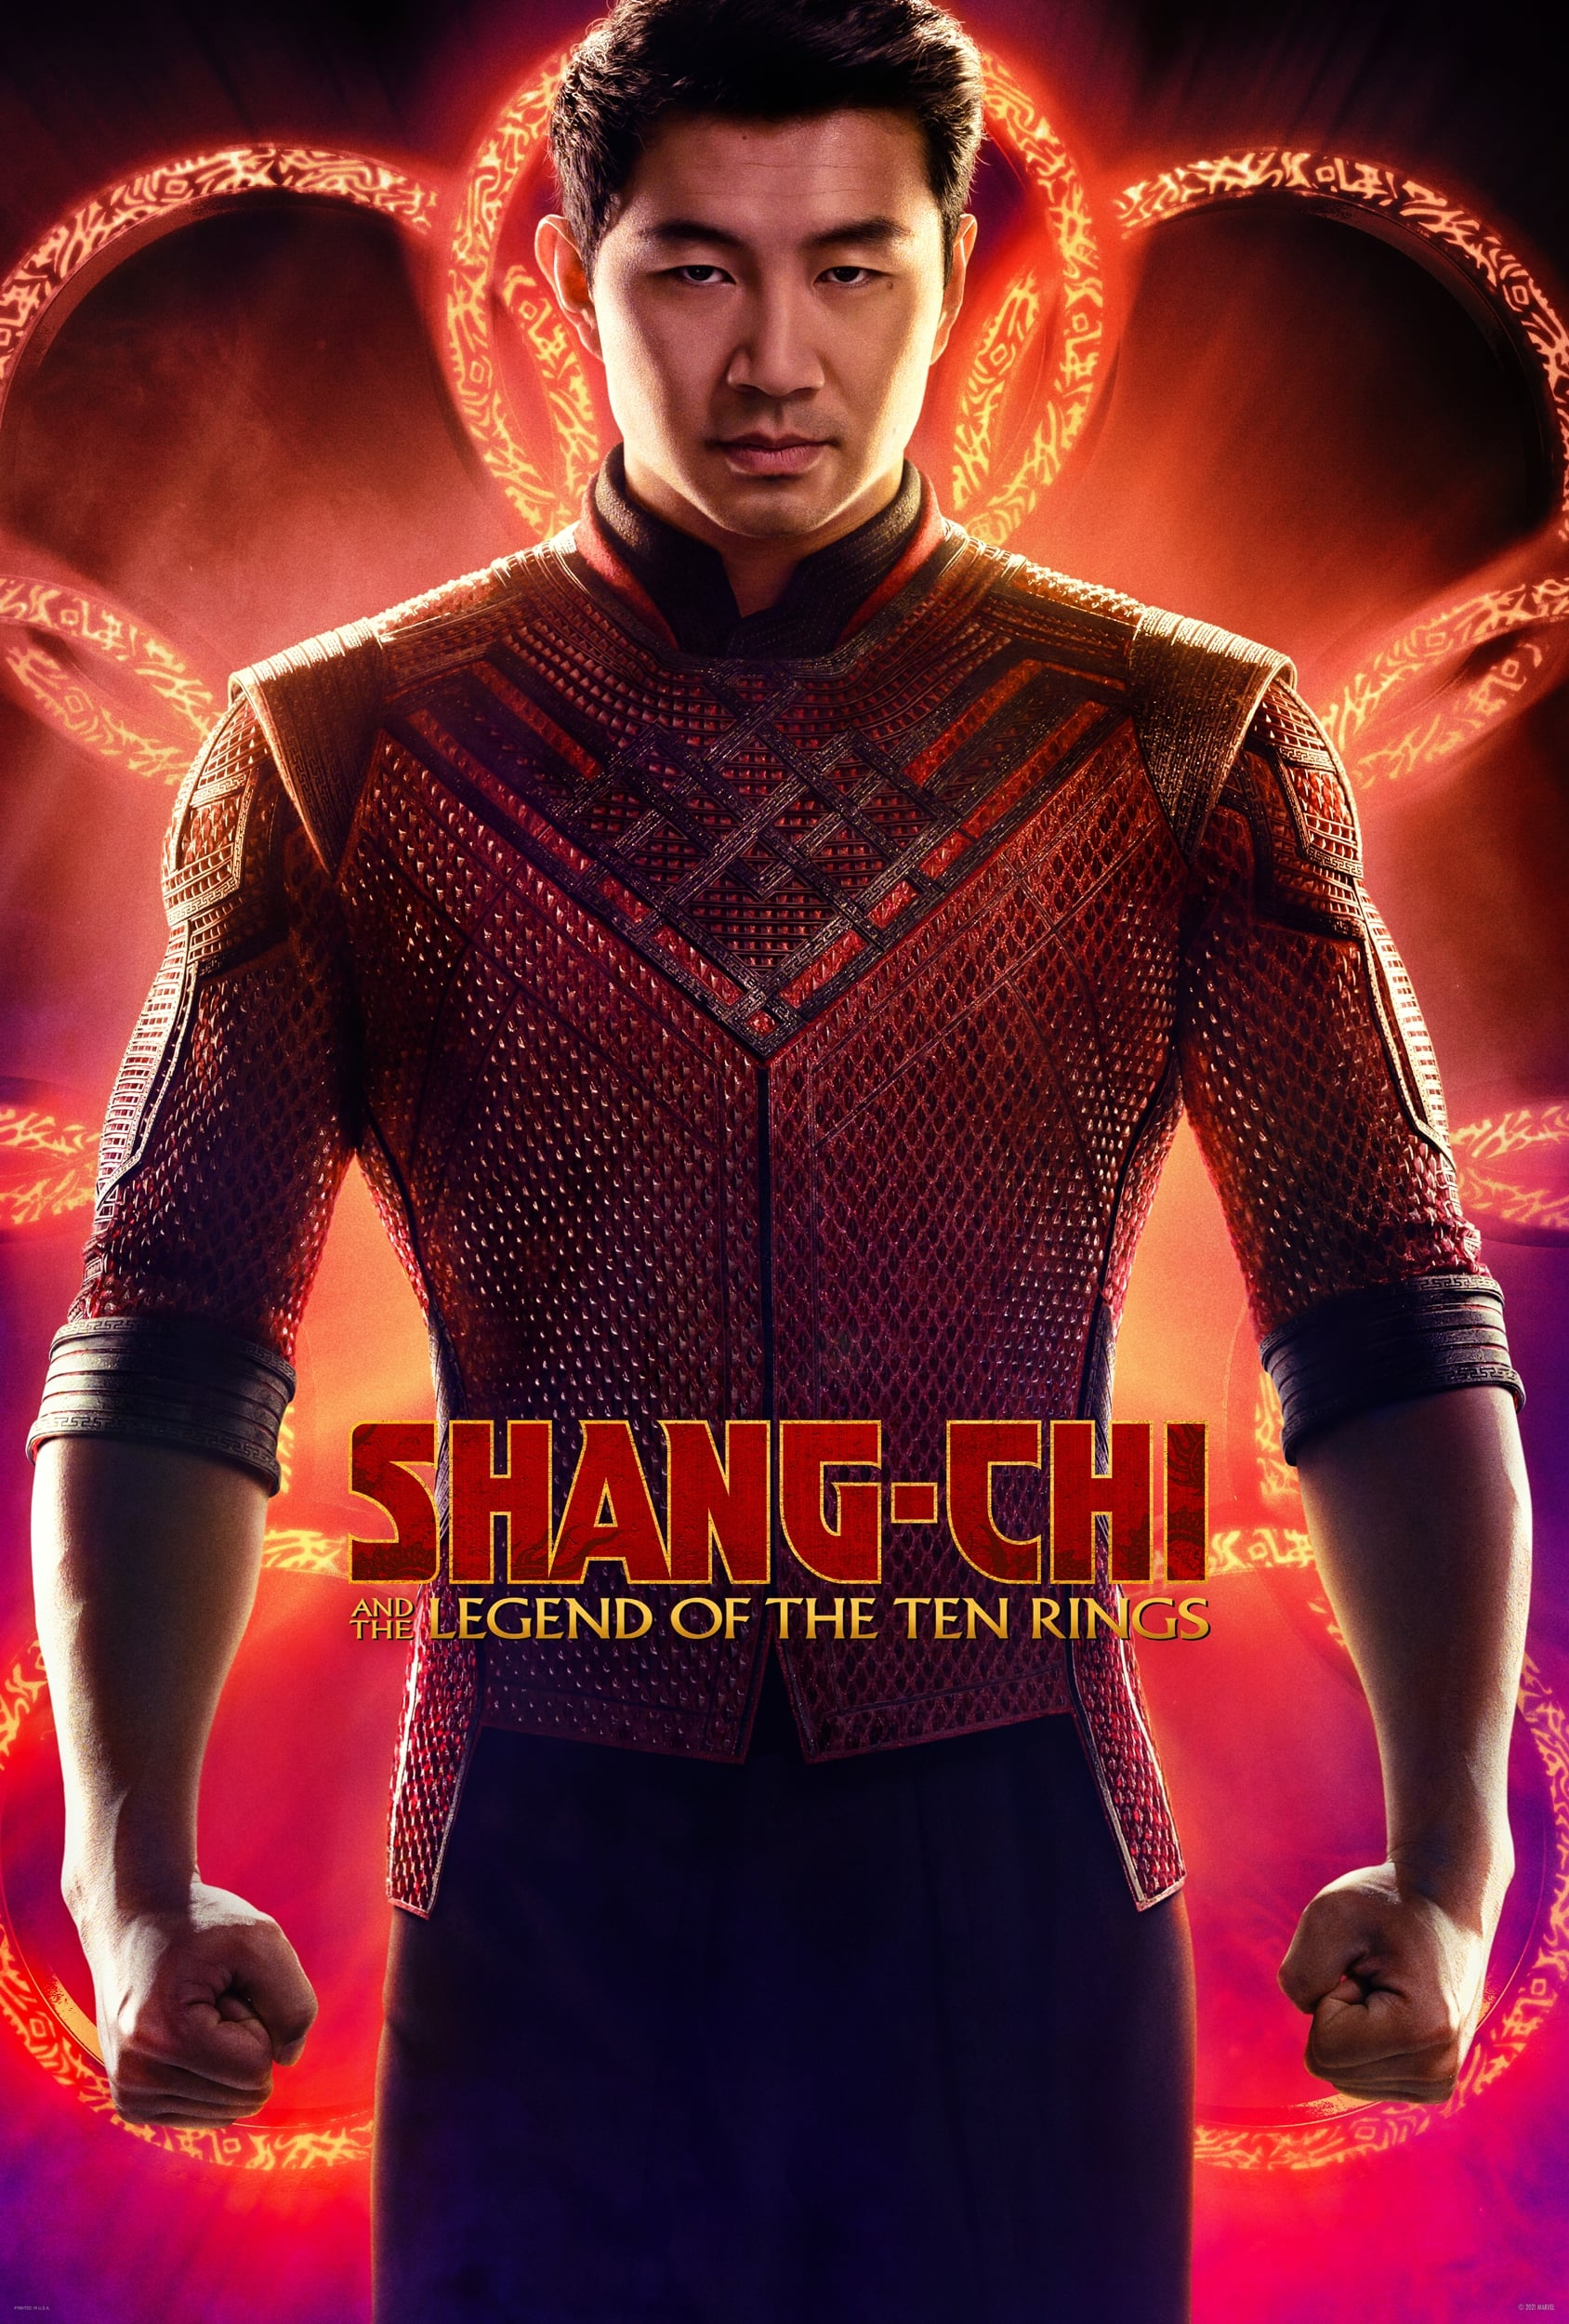 Poster for Shang-Chi and the Legend of the Ten Rings (2021)